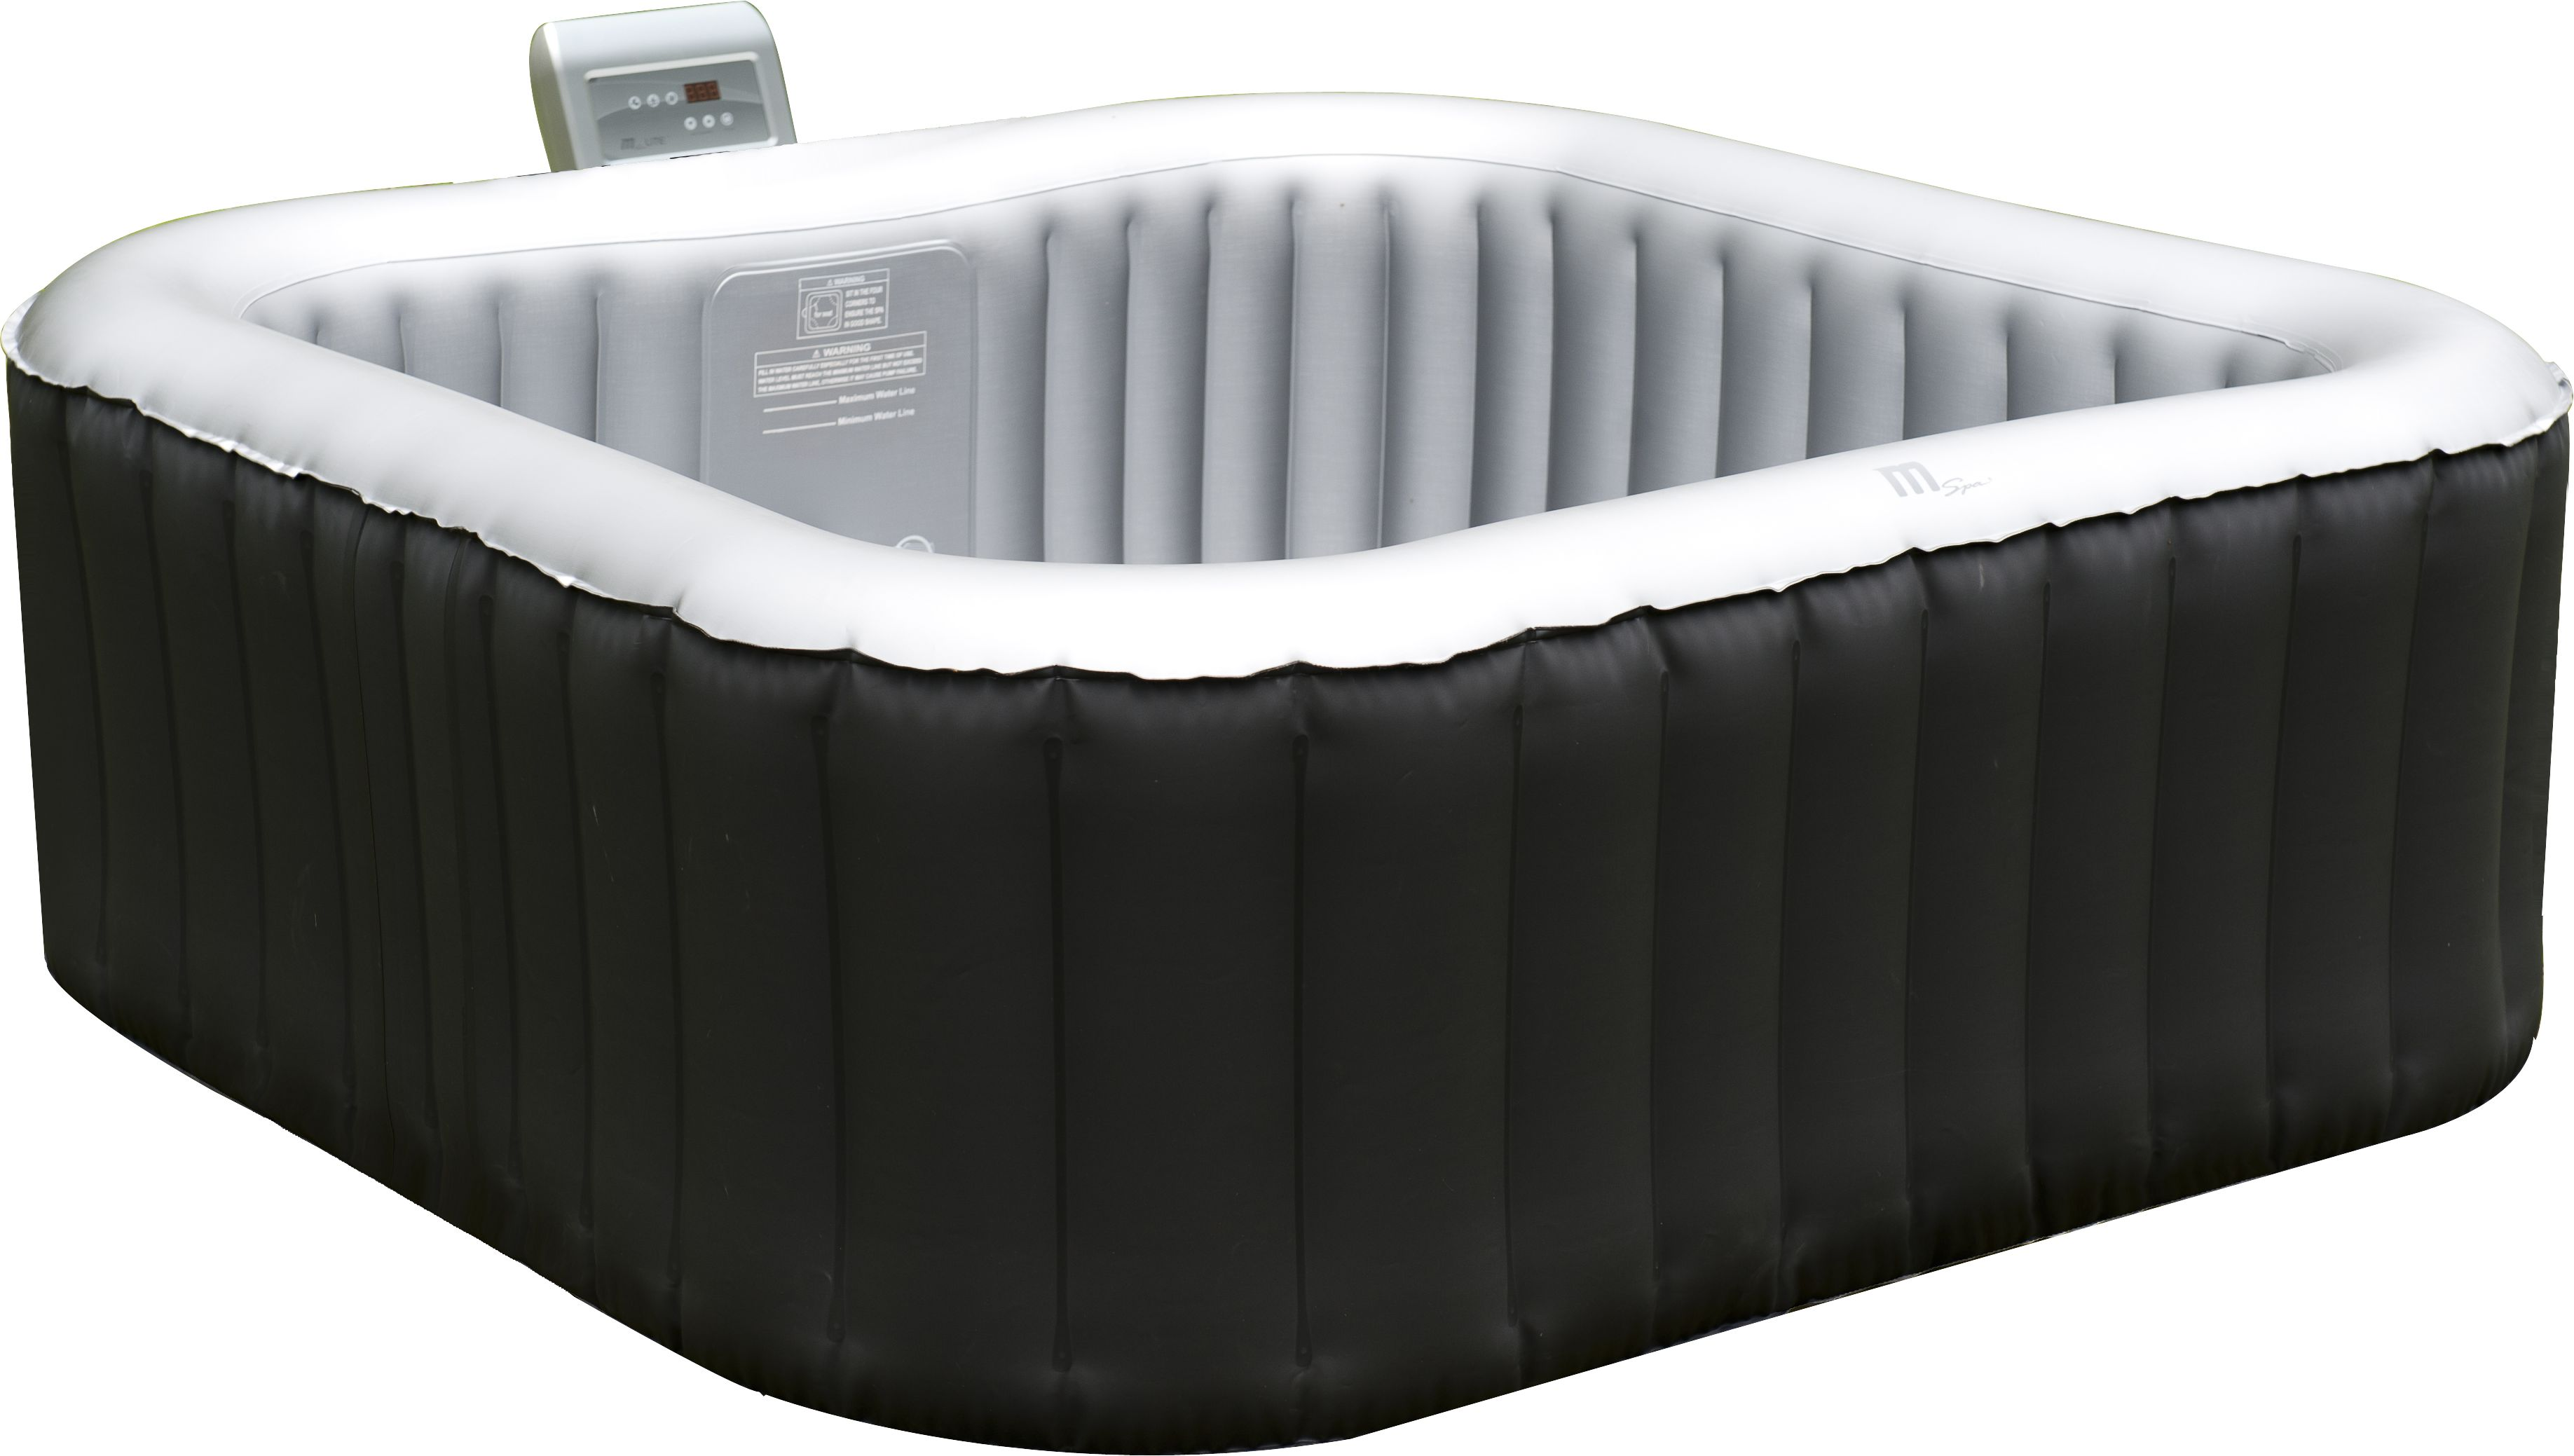 whirlpool f r 4 personen aufblasbar indoor outdoor jacuzzi massage pool heizung ebay. Black Bedroom Furniture Sets. Home Design Ideas